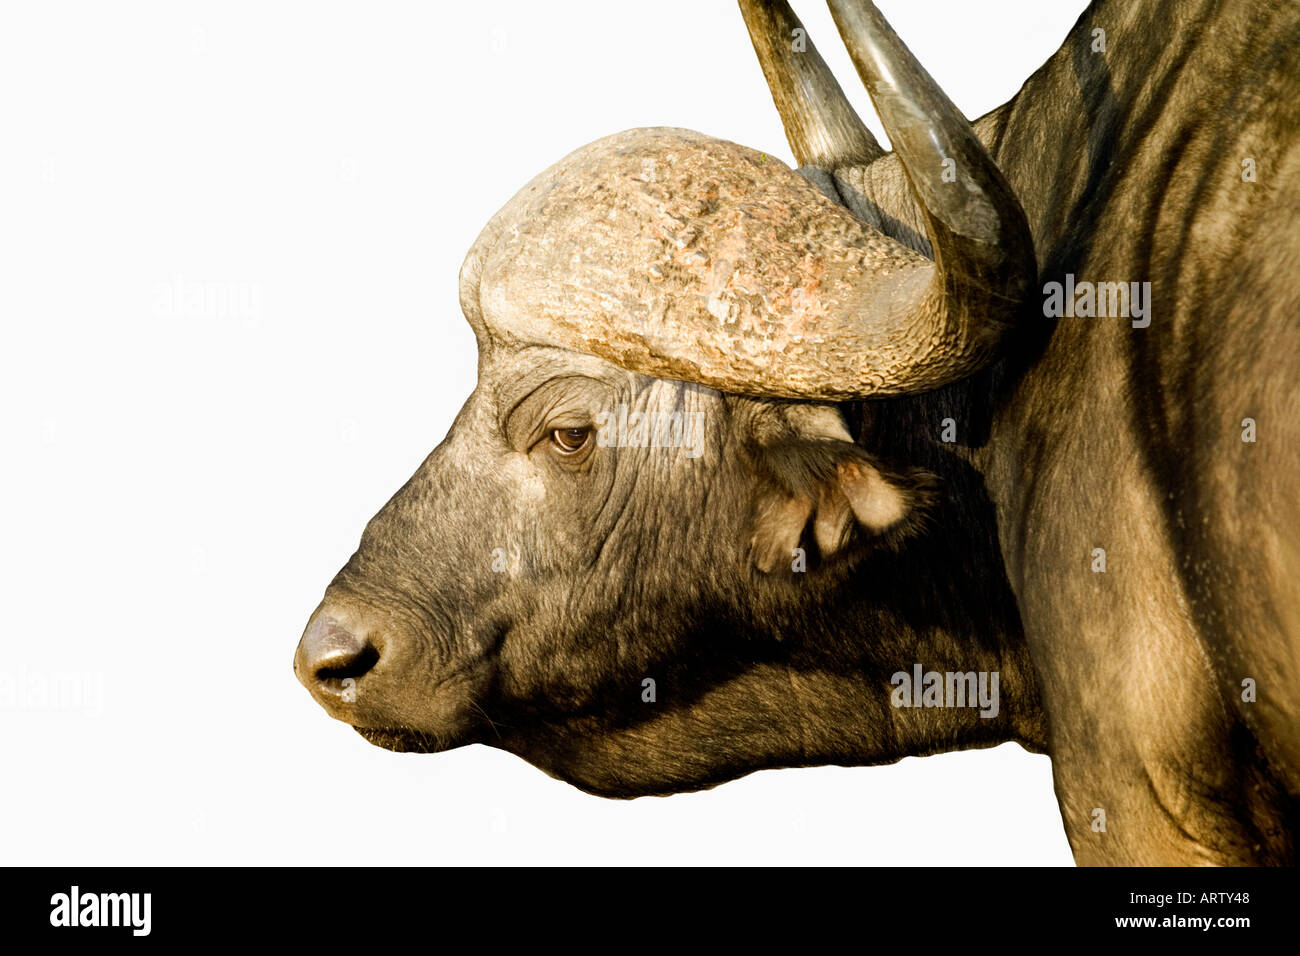 Tight profile image of water buffalo in South Africa Krueger National Park - Stock Image